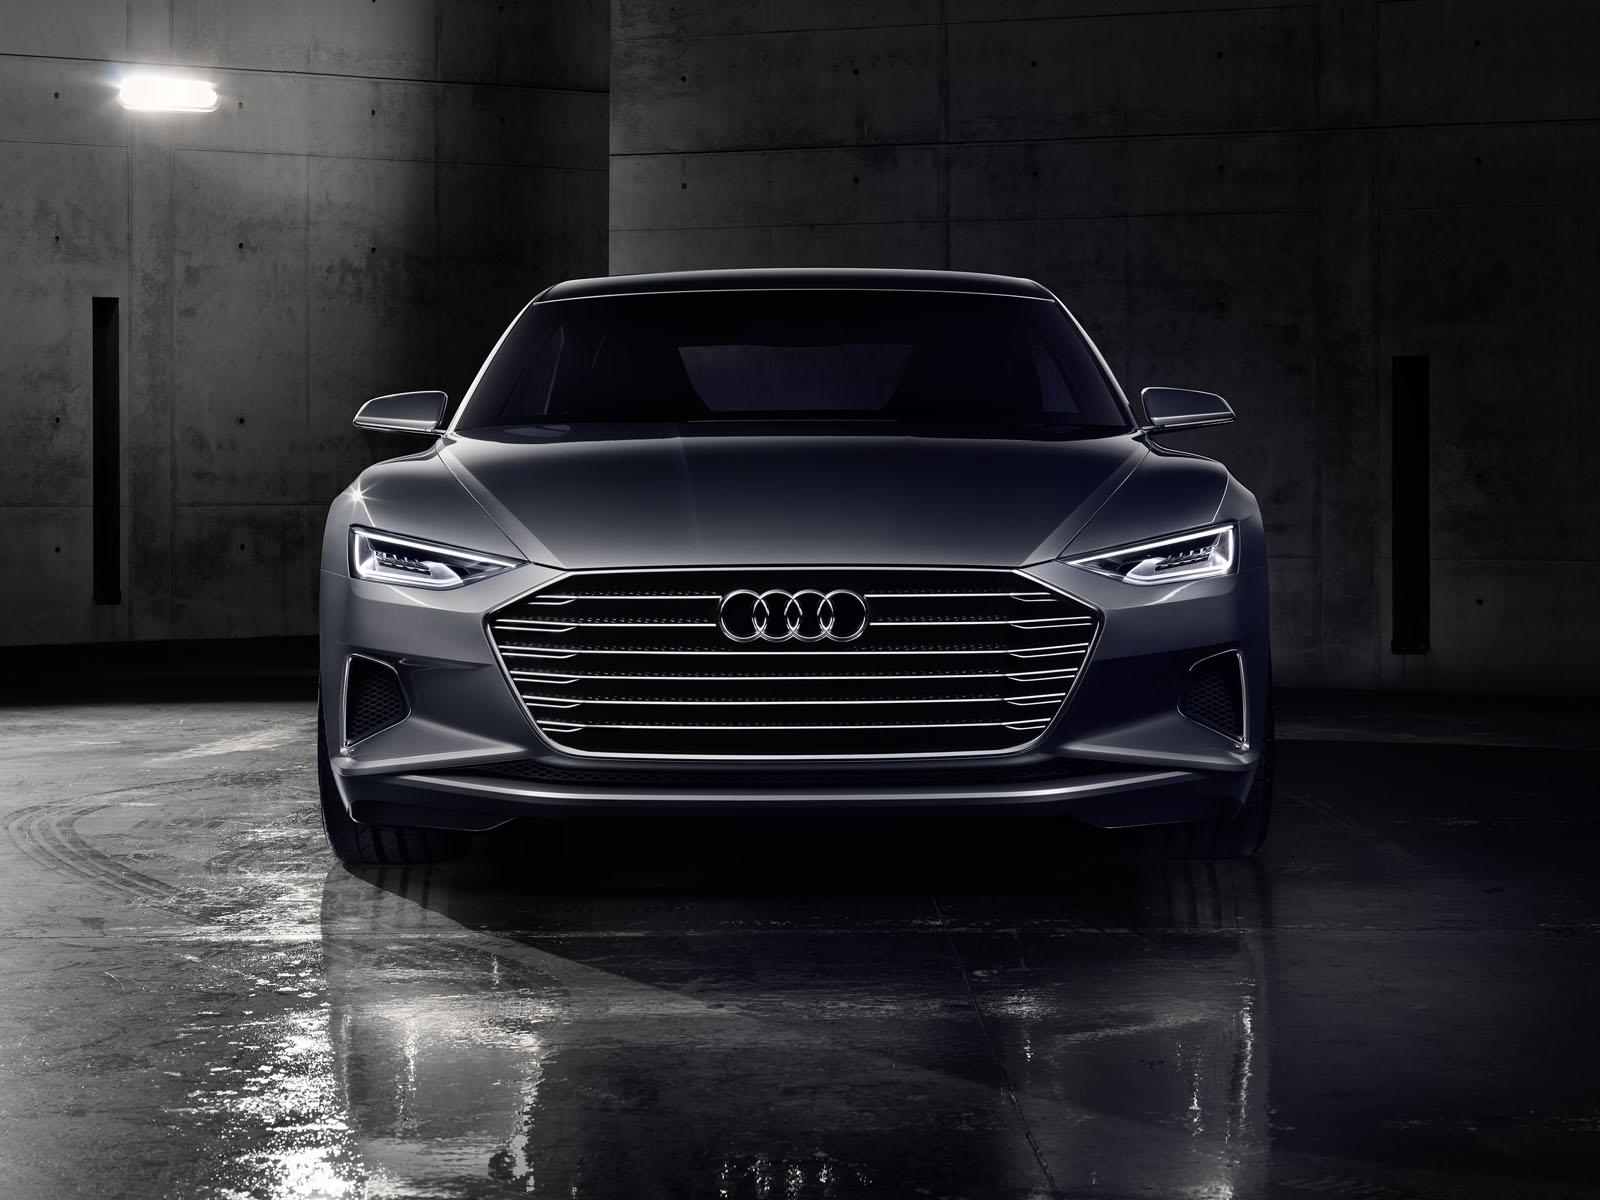 Audi Prologue (A9) Concept 5 Images - Audi Prologue (A9) Concept